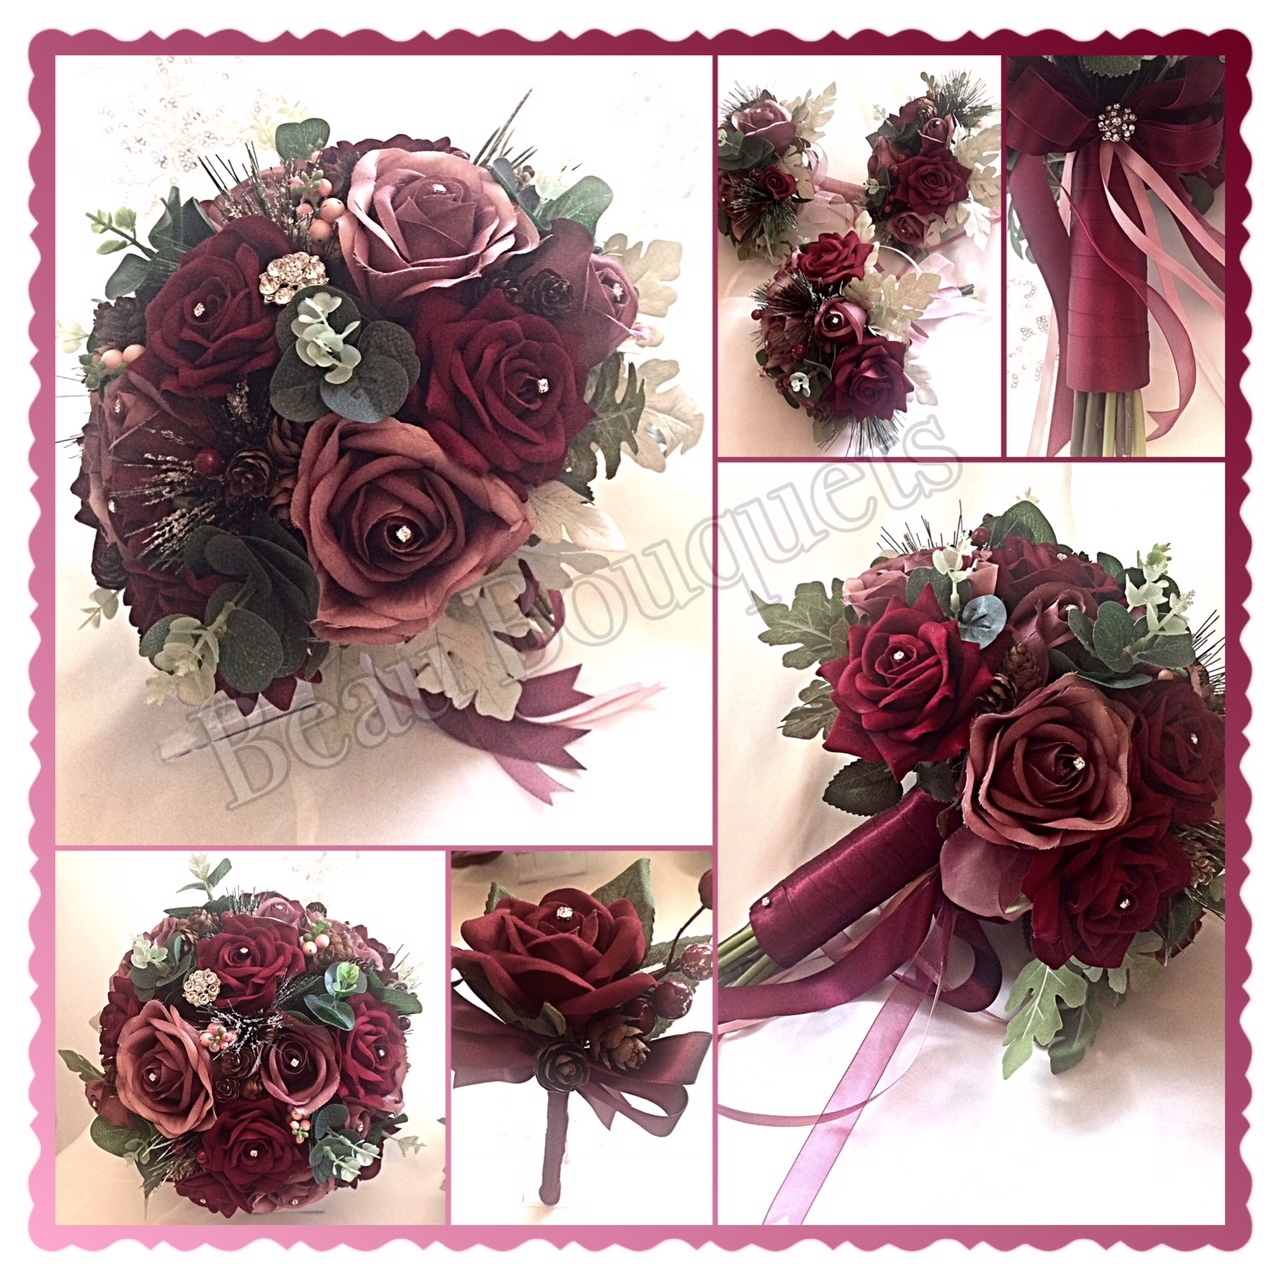 SULTRY - ARDENT - WINTRY ROSE IN BURGUNDY & DUSKY PINKS WITH DARK FOLIAGE PACKAGE